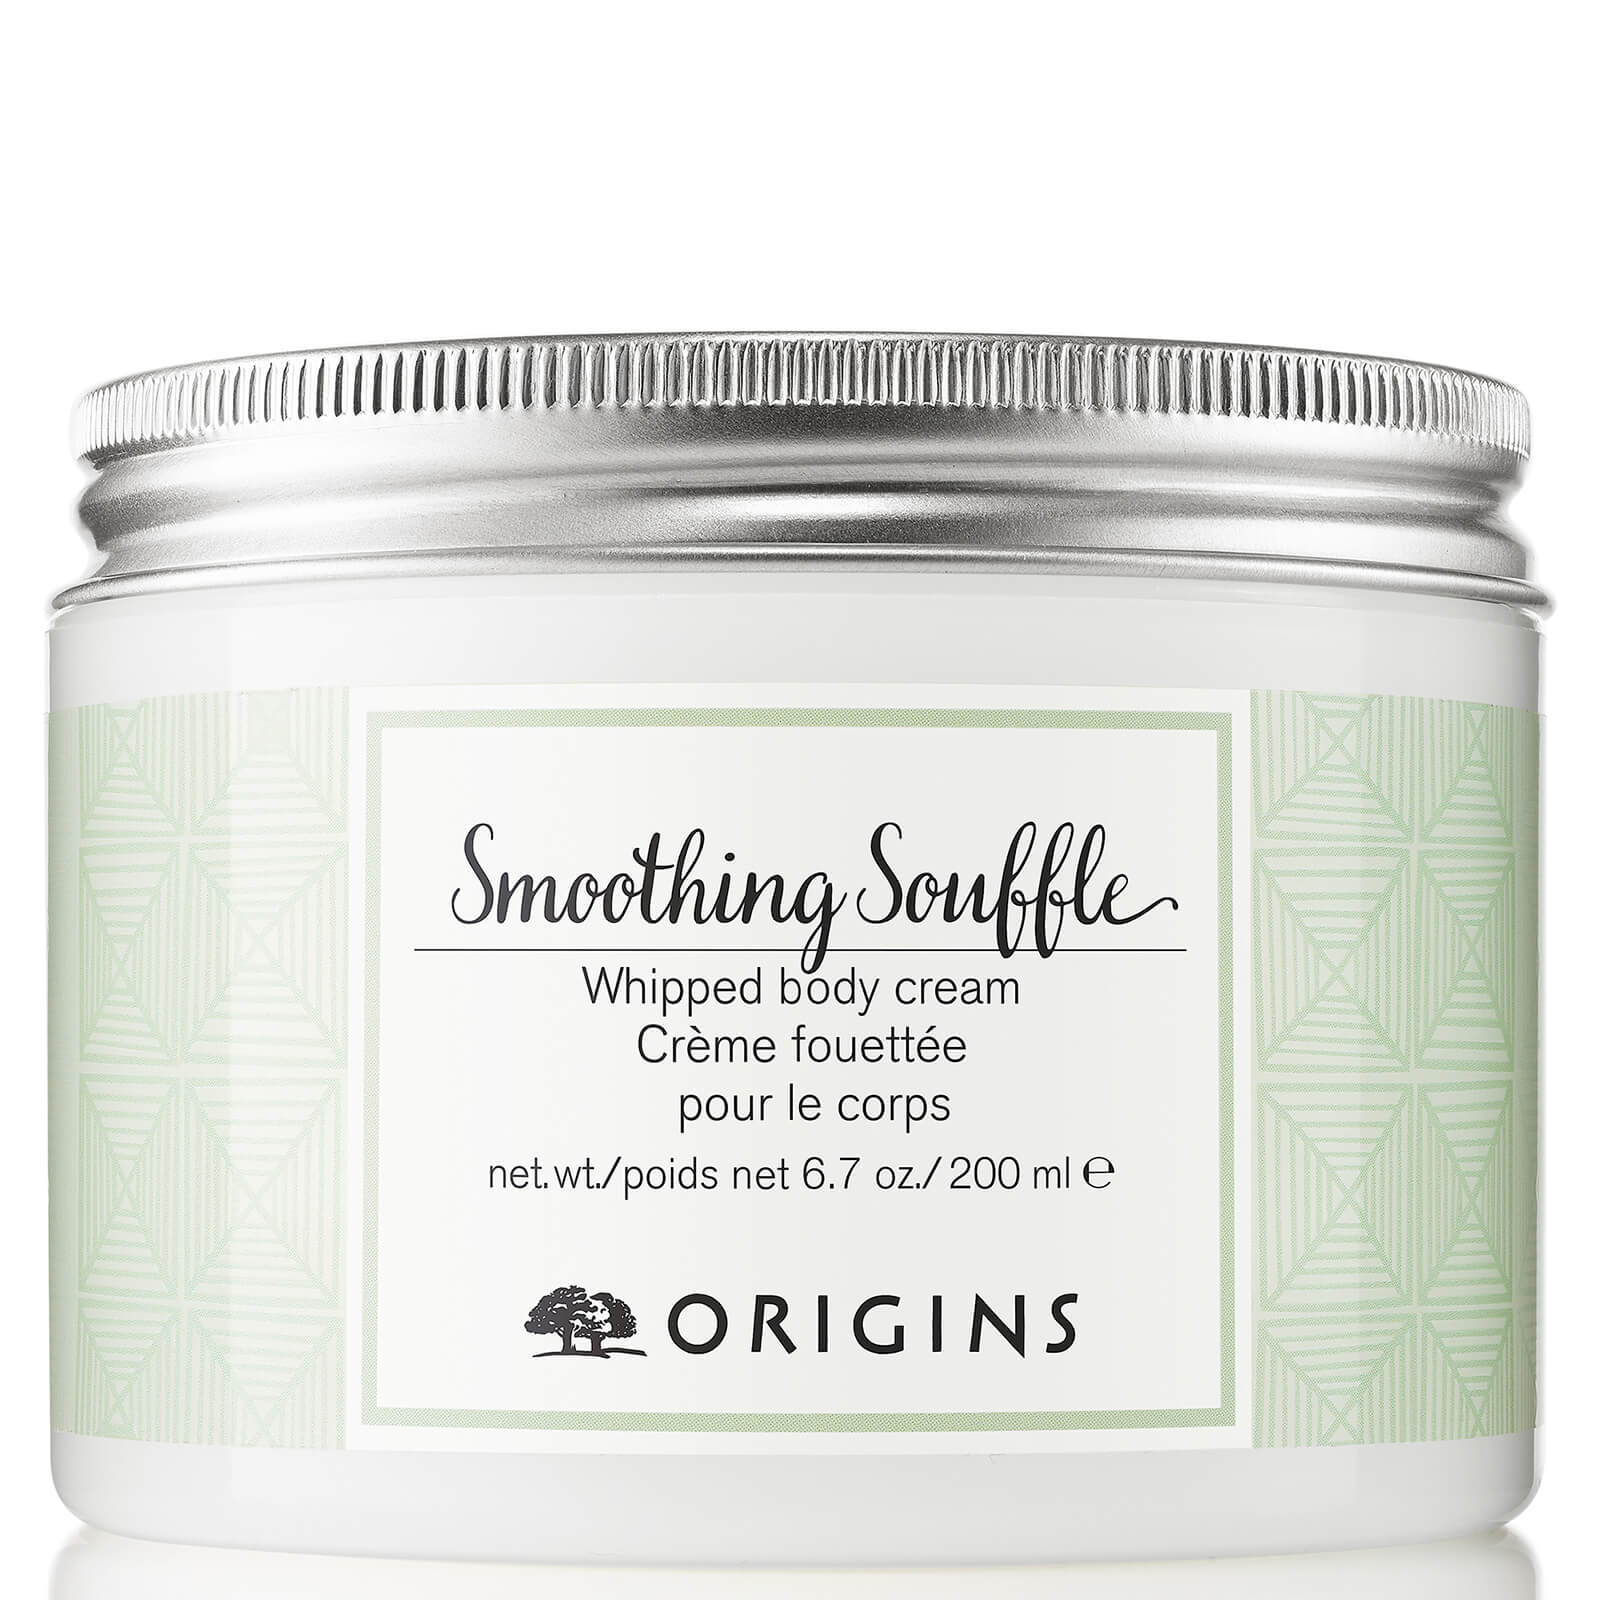 Origins Smoothing Souffle Whipped Body Cream (200ml)